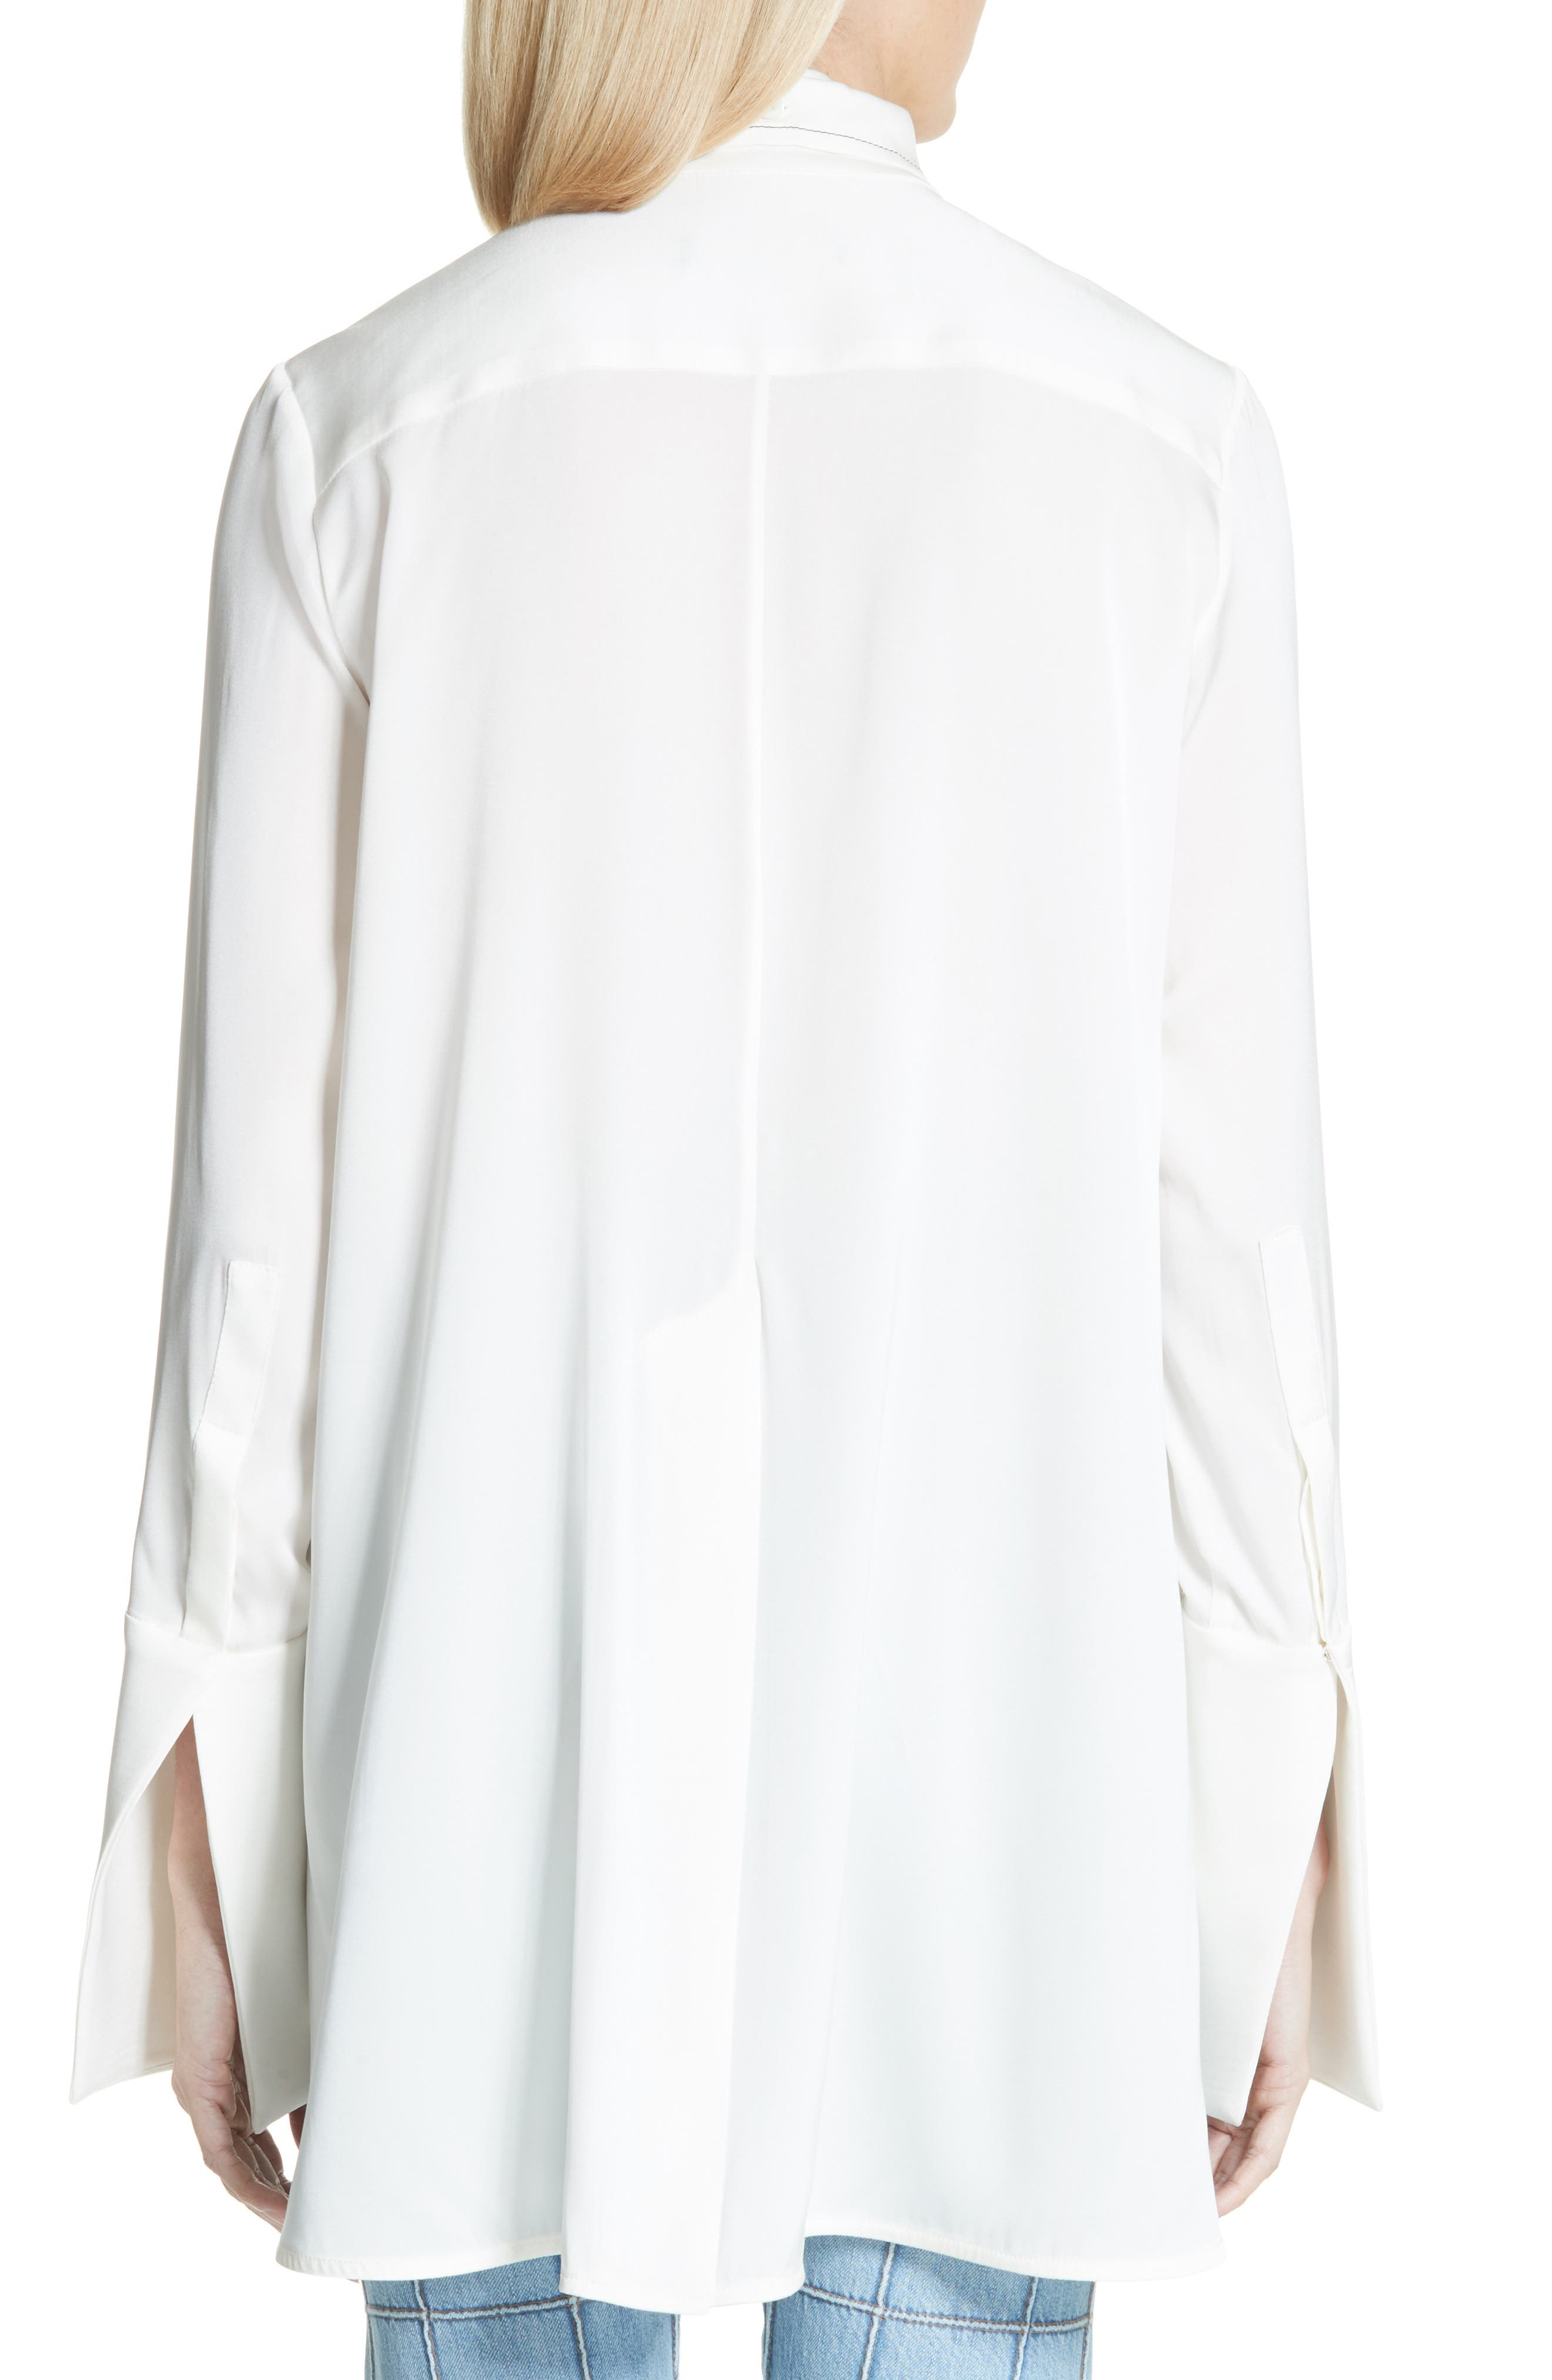 Ride Lonesome Tie Neck Blouse,                             Alternate thumbnail 2, color,                             900